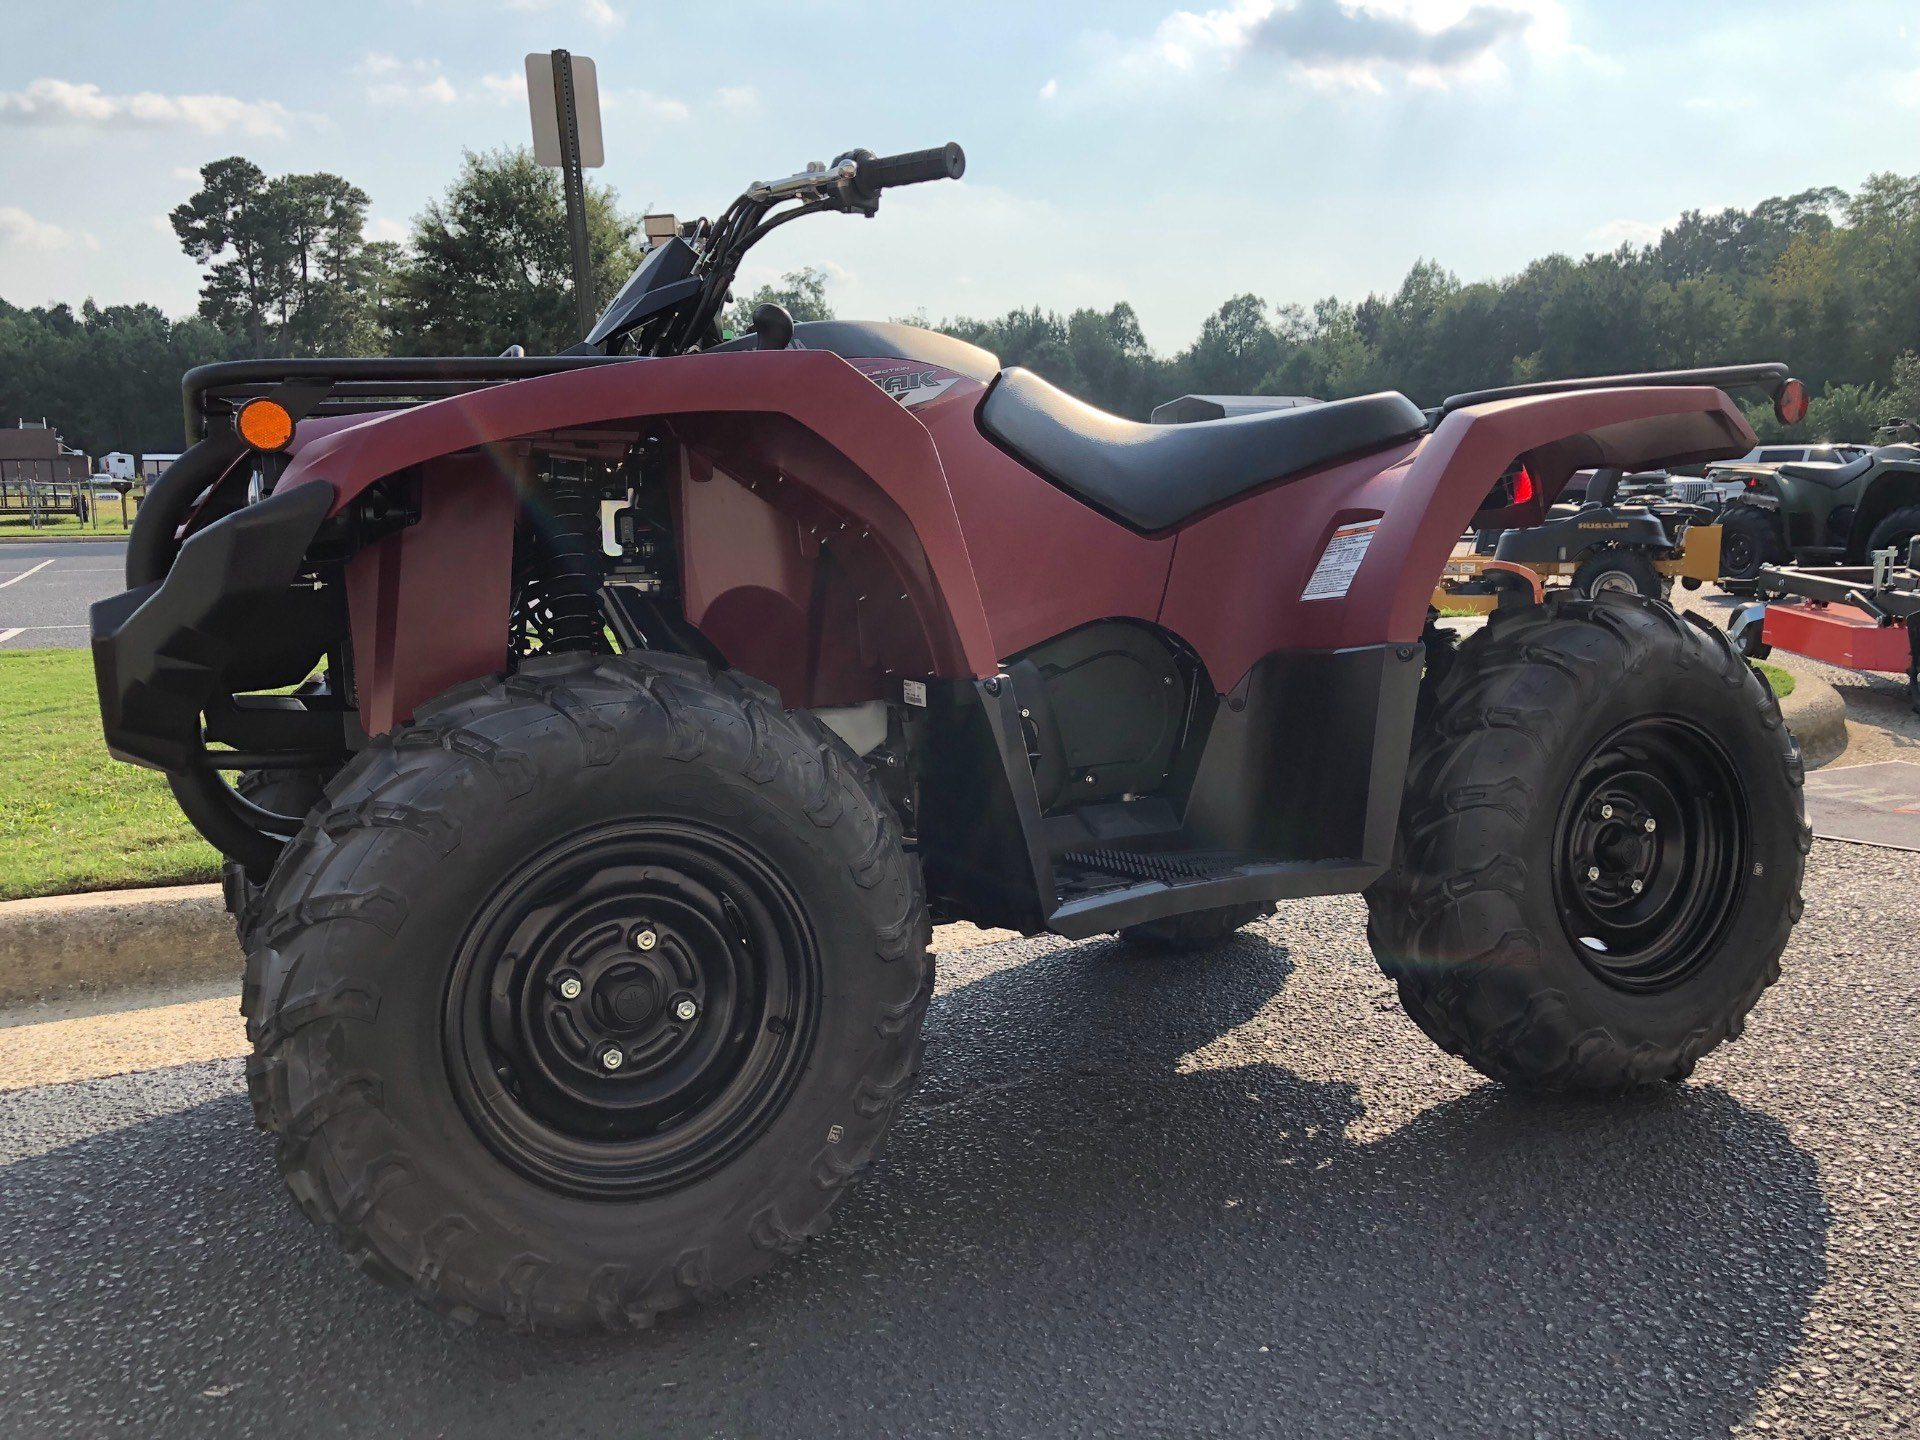 2020 Yamaha Kodiak 450 in Greenville, North Carolina - Photo 6